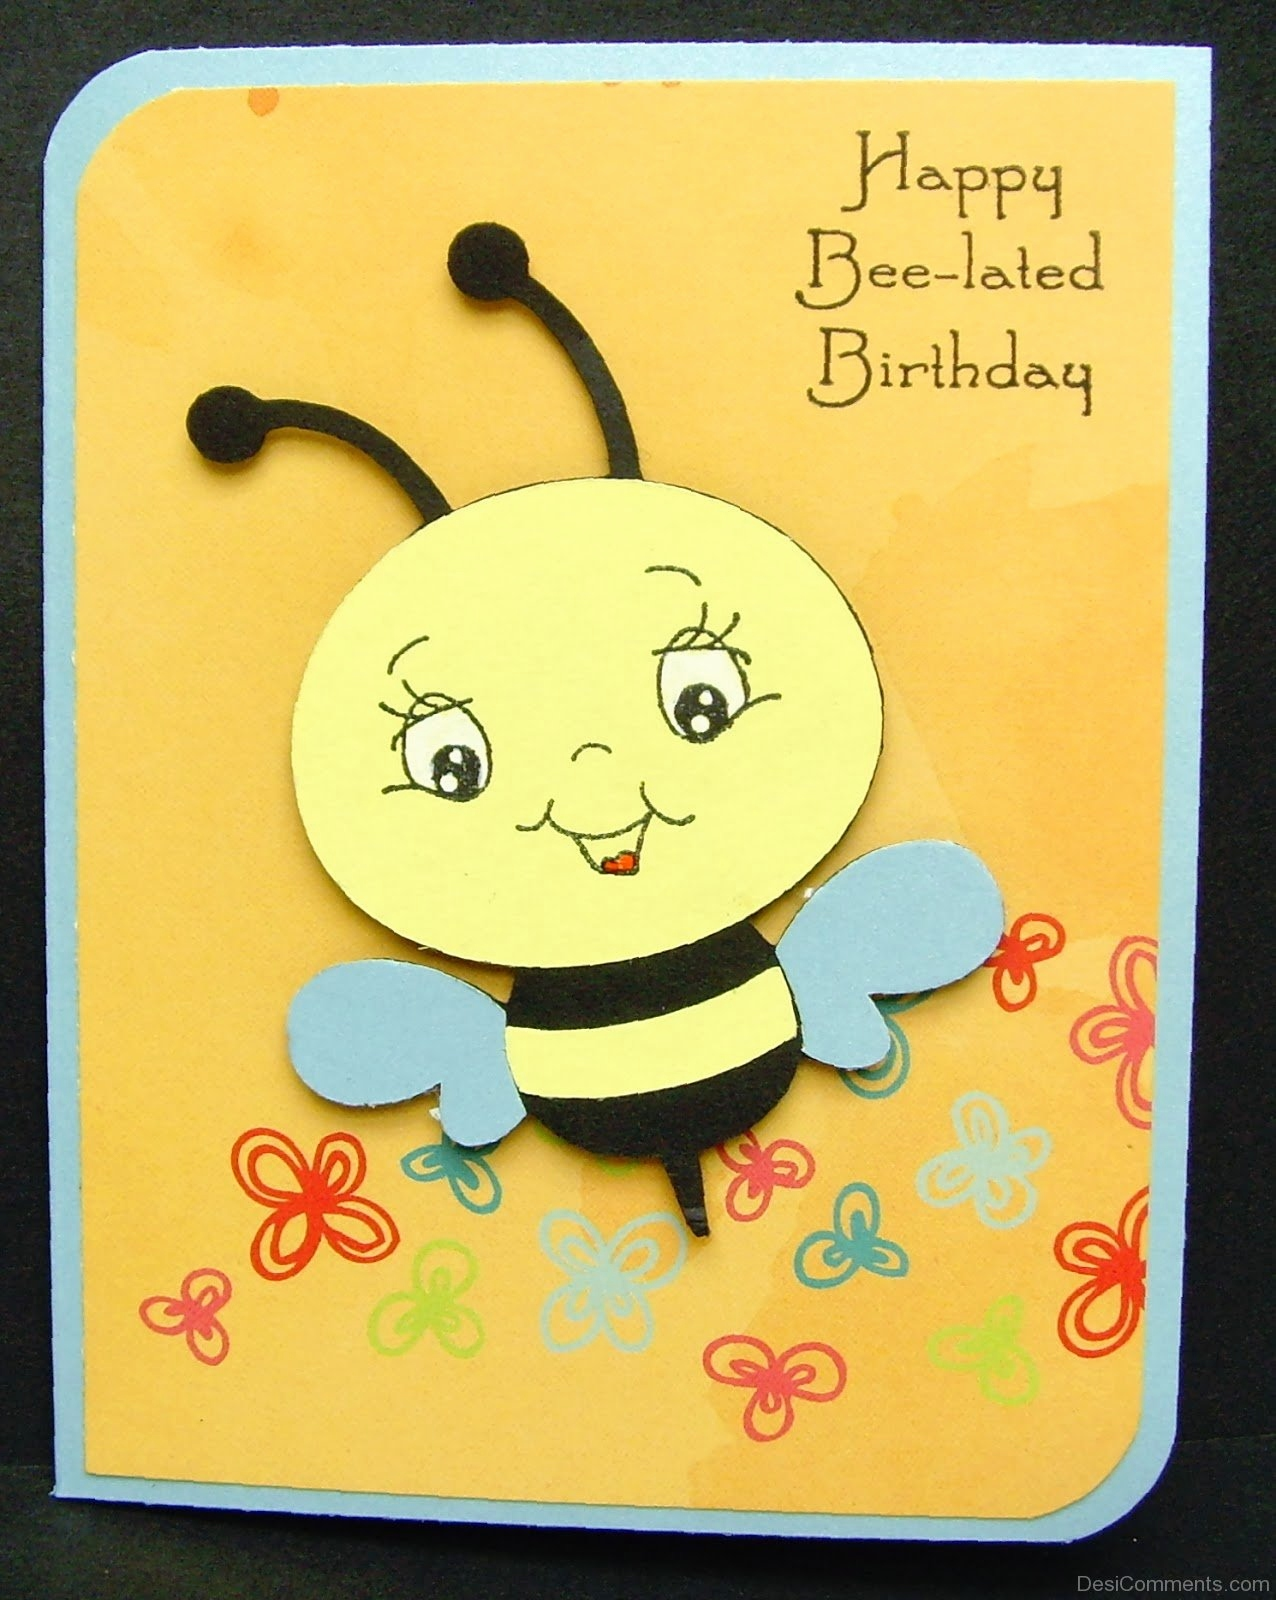 free greeting e cards 123 birthday ; free-greeting-e-cards-123-birthday-new-template-free-belated-birthday-cards-hallmark-to-her-with-of-free-greeting-e-cards-123-birthday